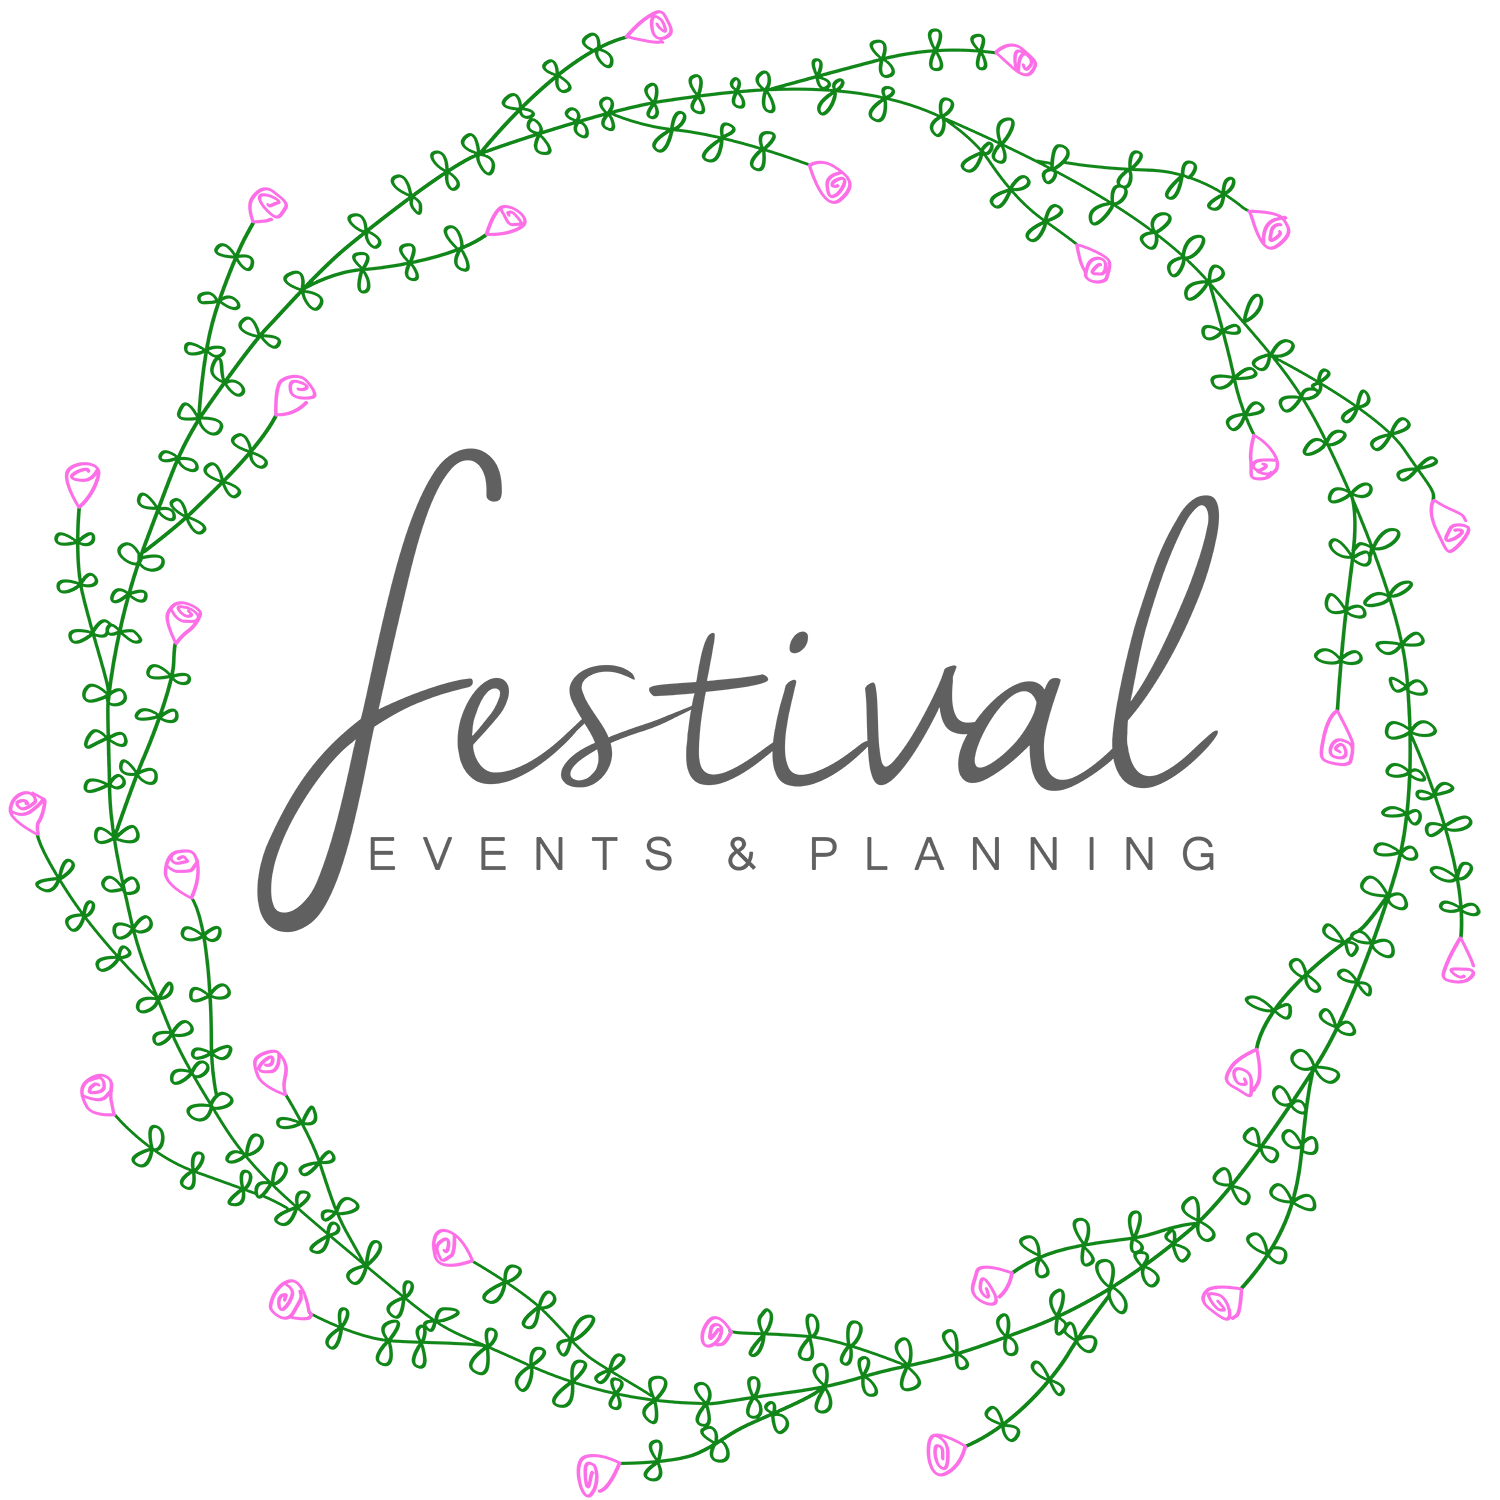 Festival Events & Planning Limited